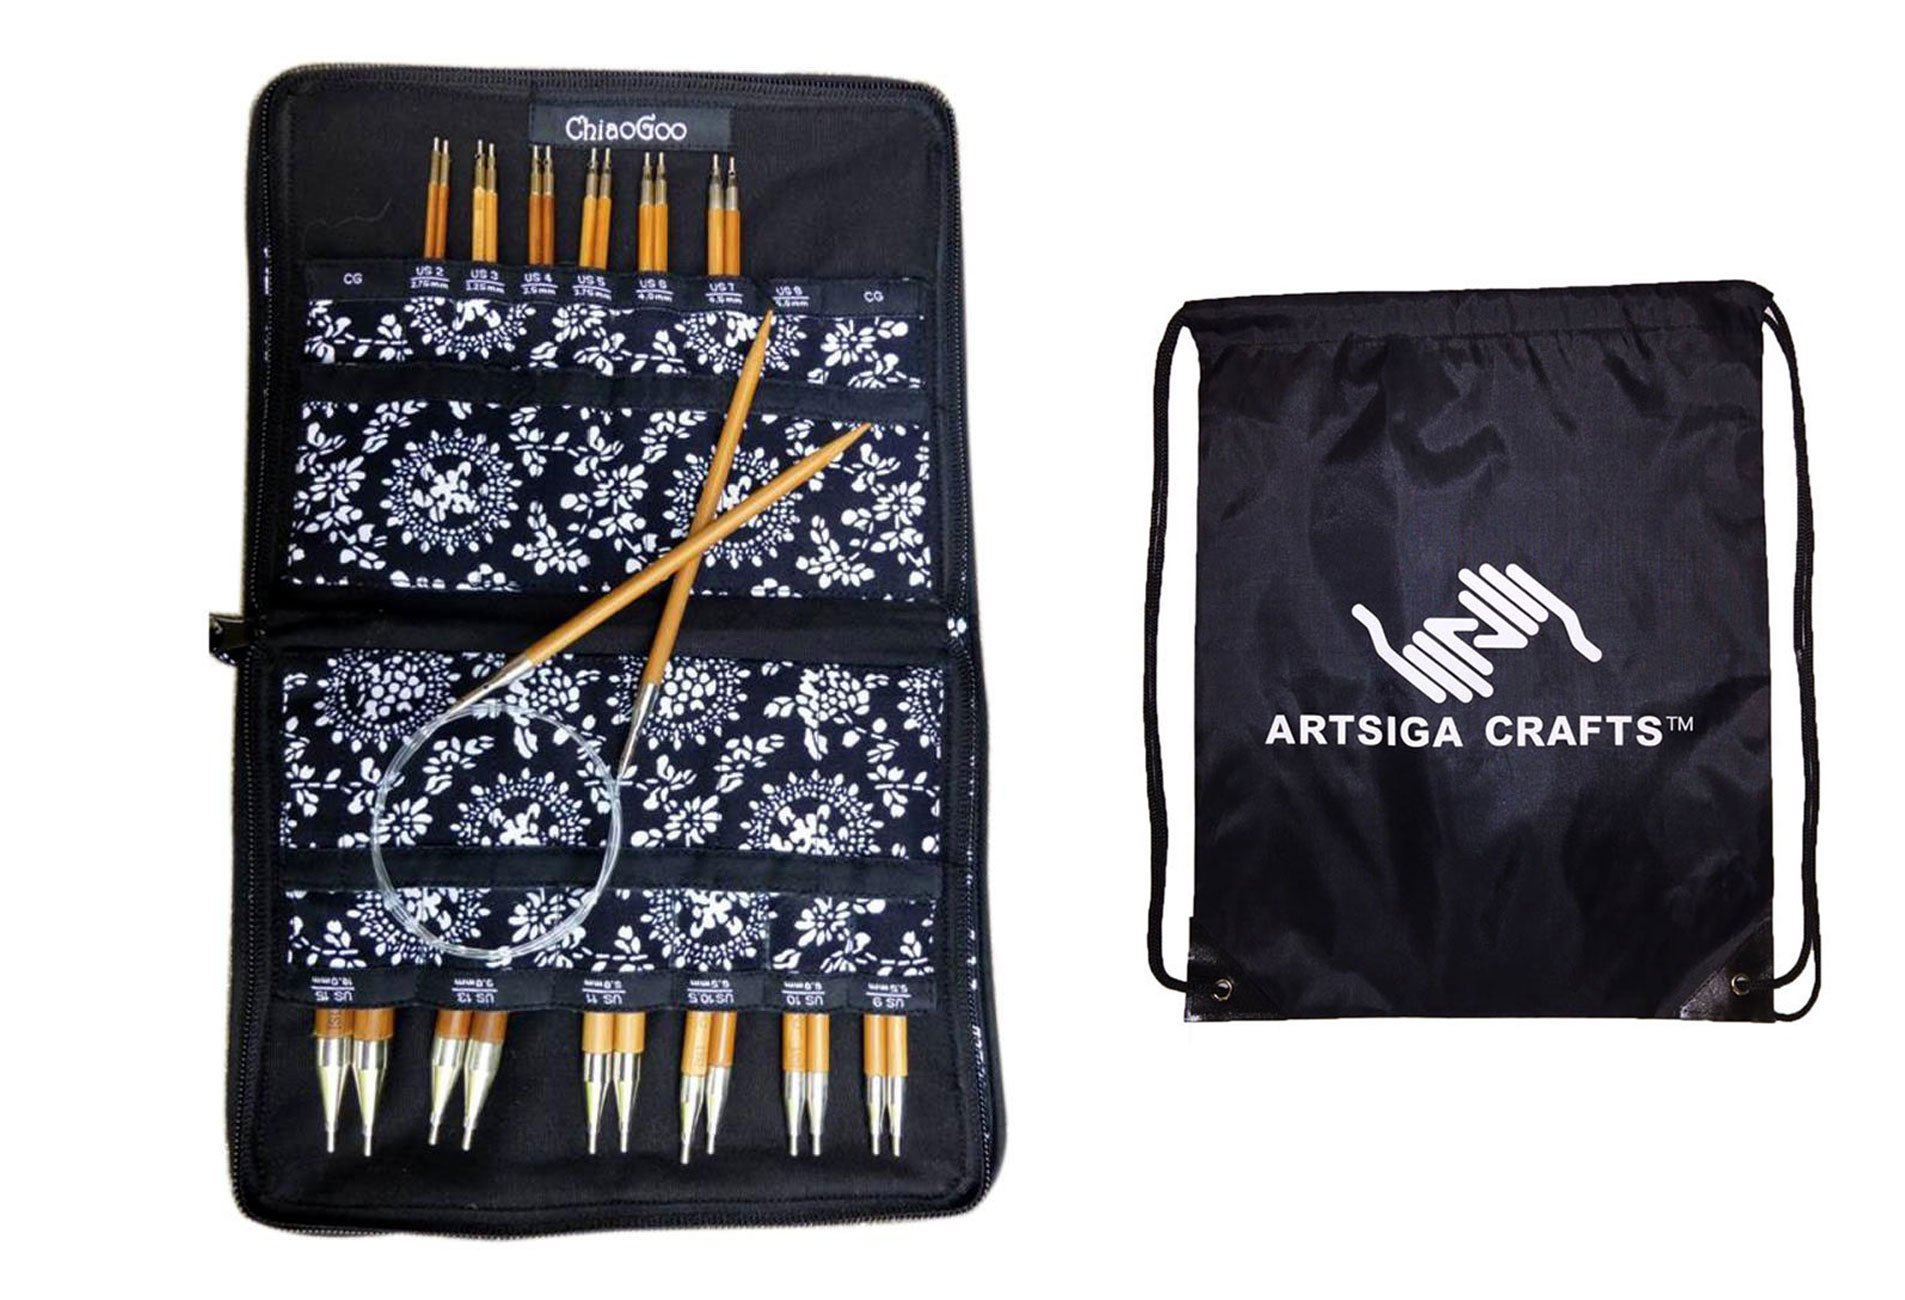 ChiaoGoo Spin Interchangeable Knitting Needle Set Complete: Size US 2 (2.75mm)-Size US 15 (10mm) Bundle with 1 Artsiga Crafts Project Bag 2500-C